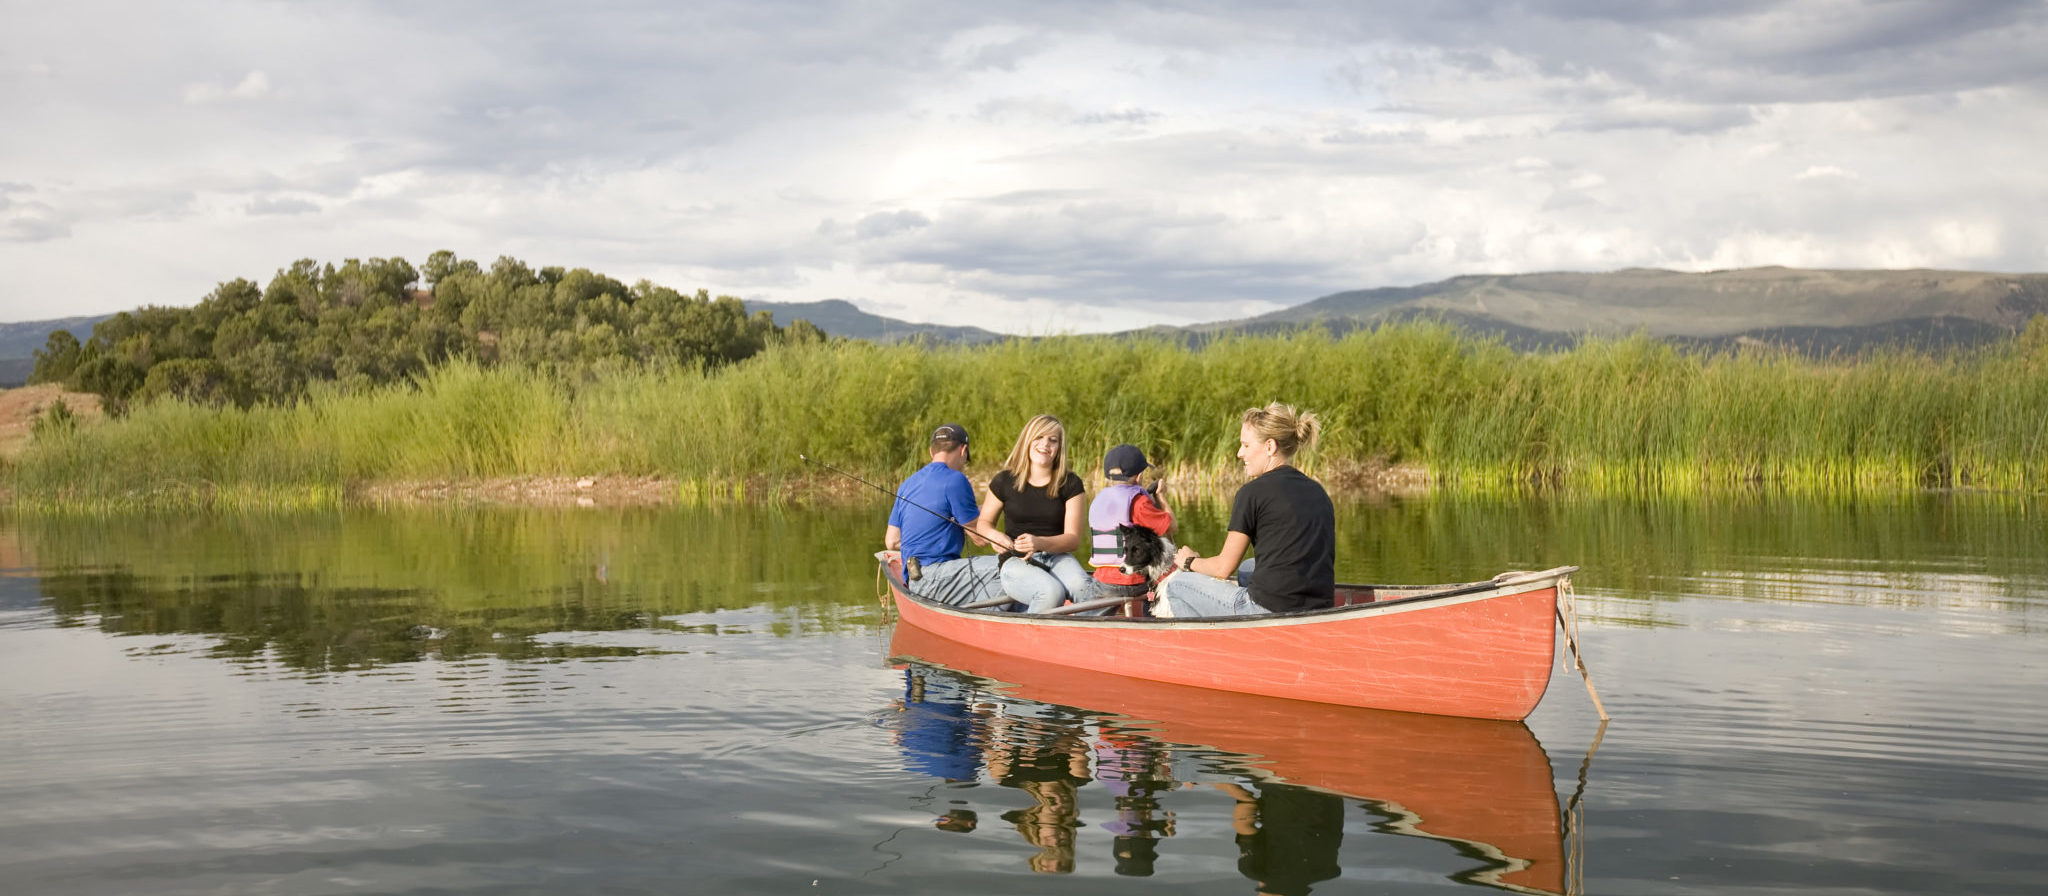 You can pack a small sized family into a canoe without too much trouble. Just make sure everyone is being extra careful so you do not all end up in the water!